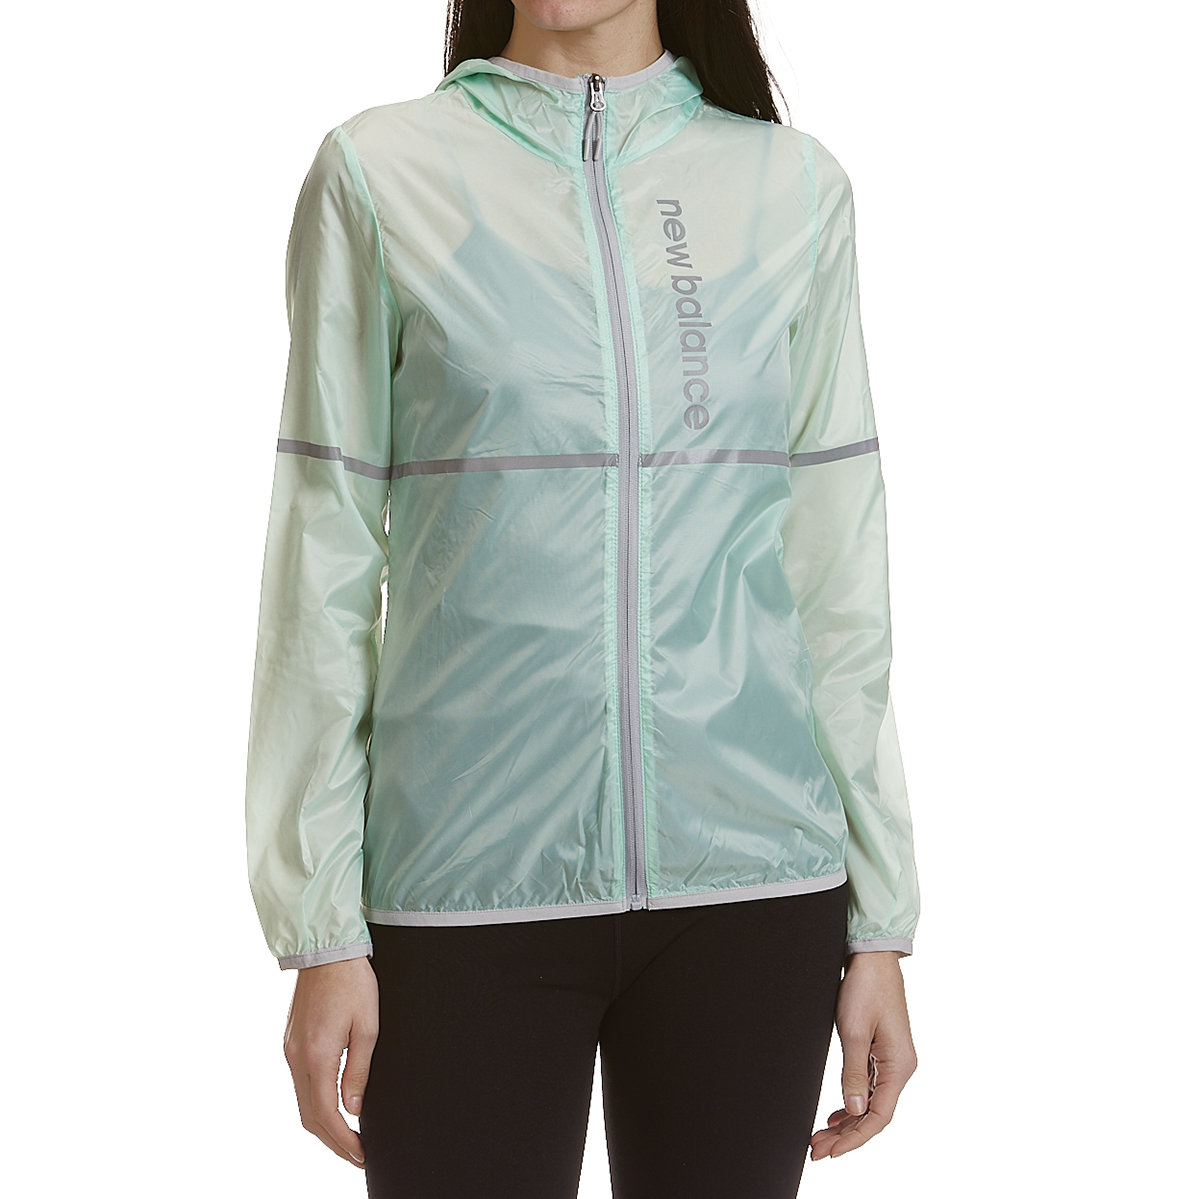 New Balance Women's Translucent Ribstop Hooded Jacket With Reflective Trim - Blue, S